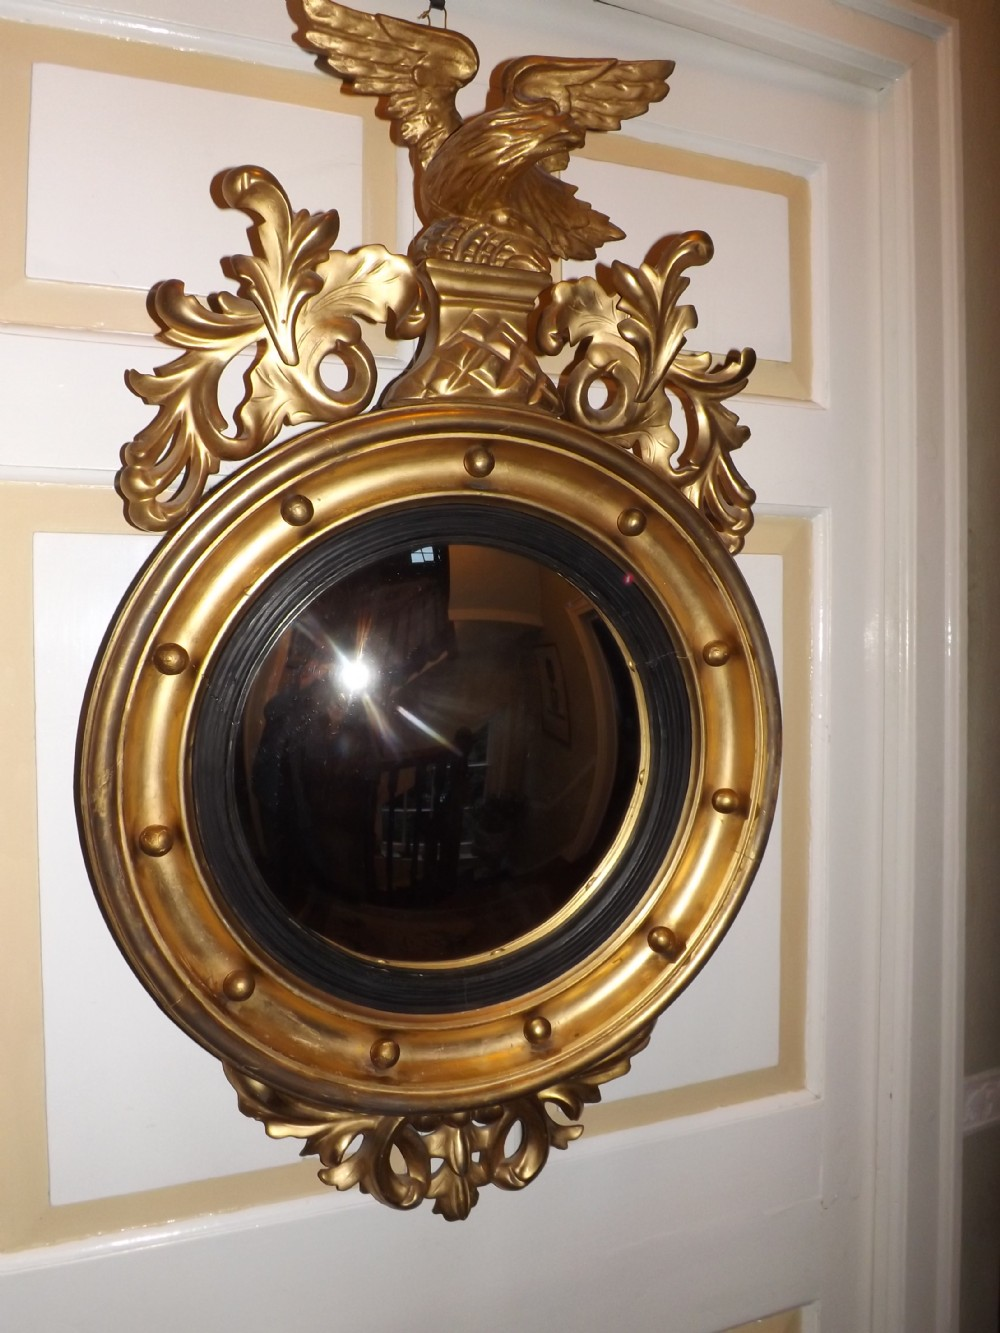 c19th regency period giltwood framed convex wall mirror